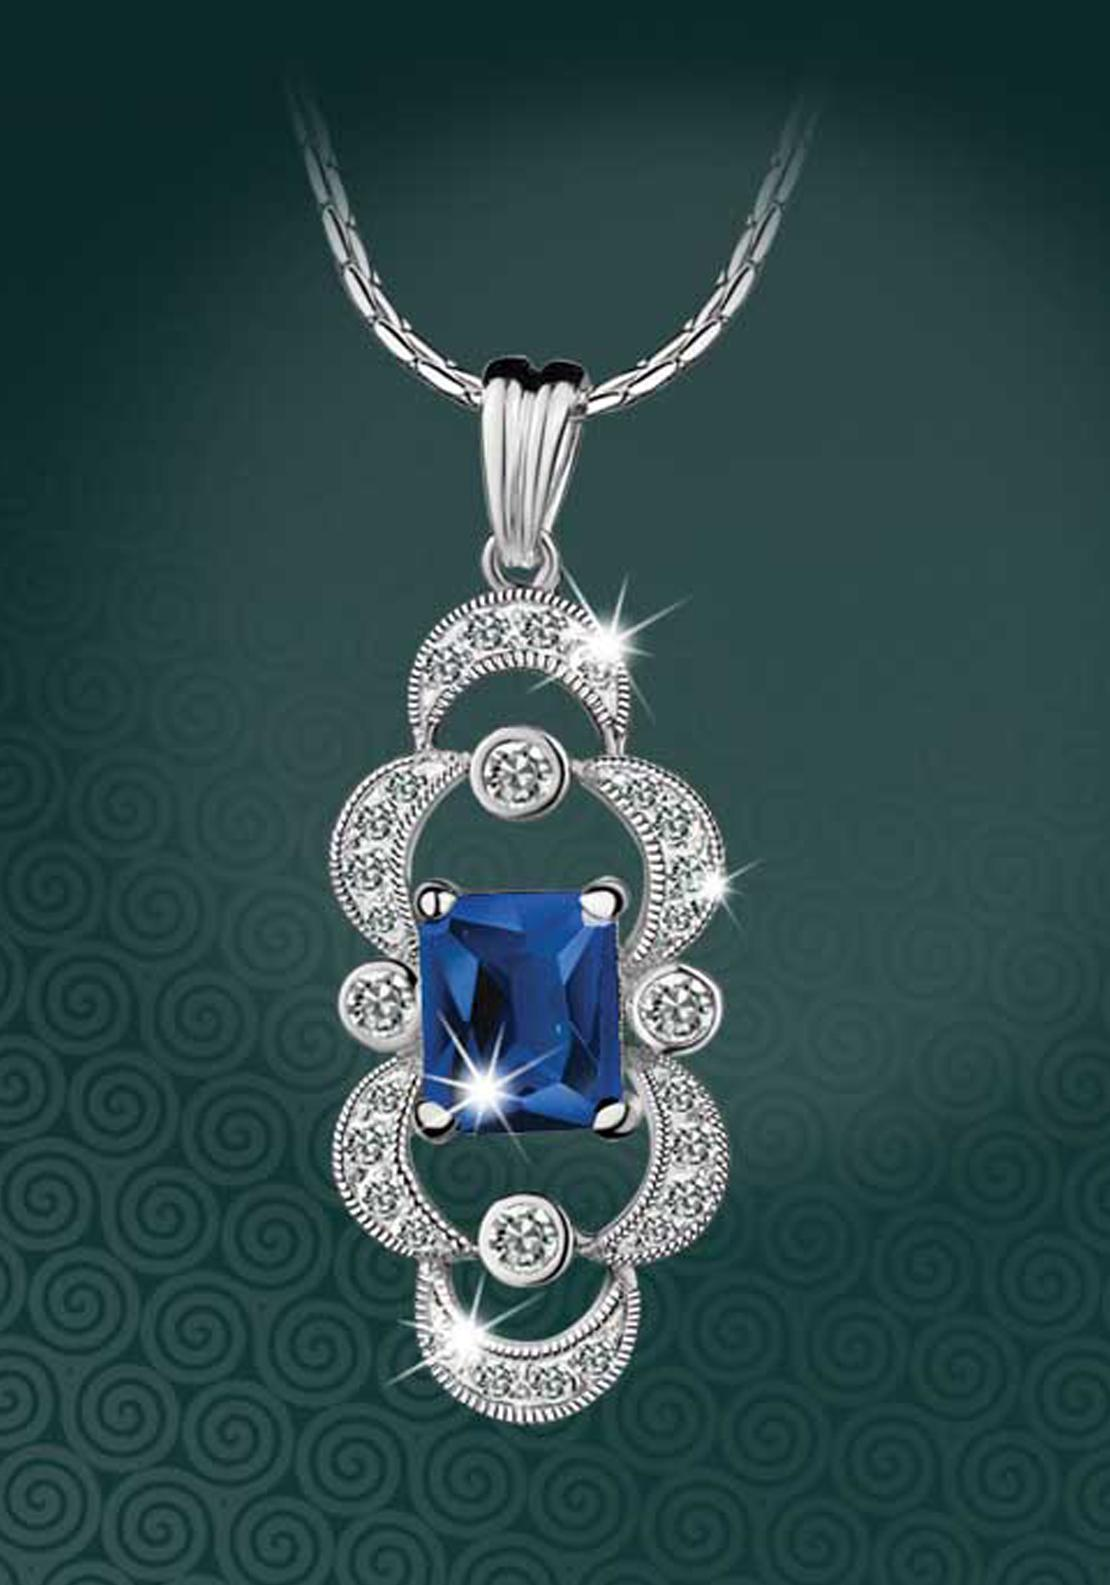 Newbridge Maureen O'Hara Crystal Pendant, Silver / Blue